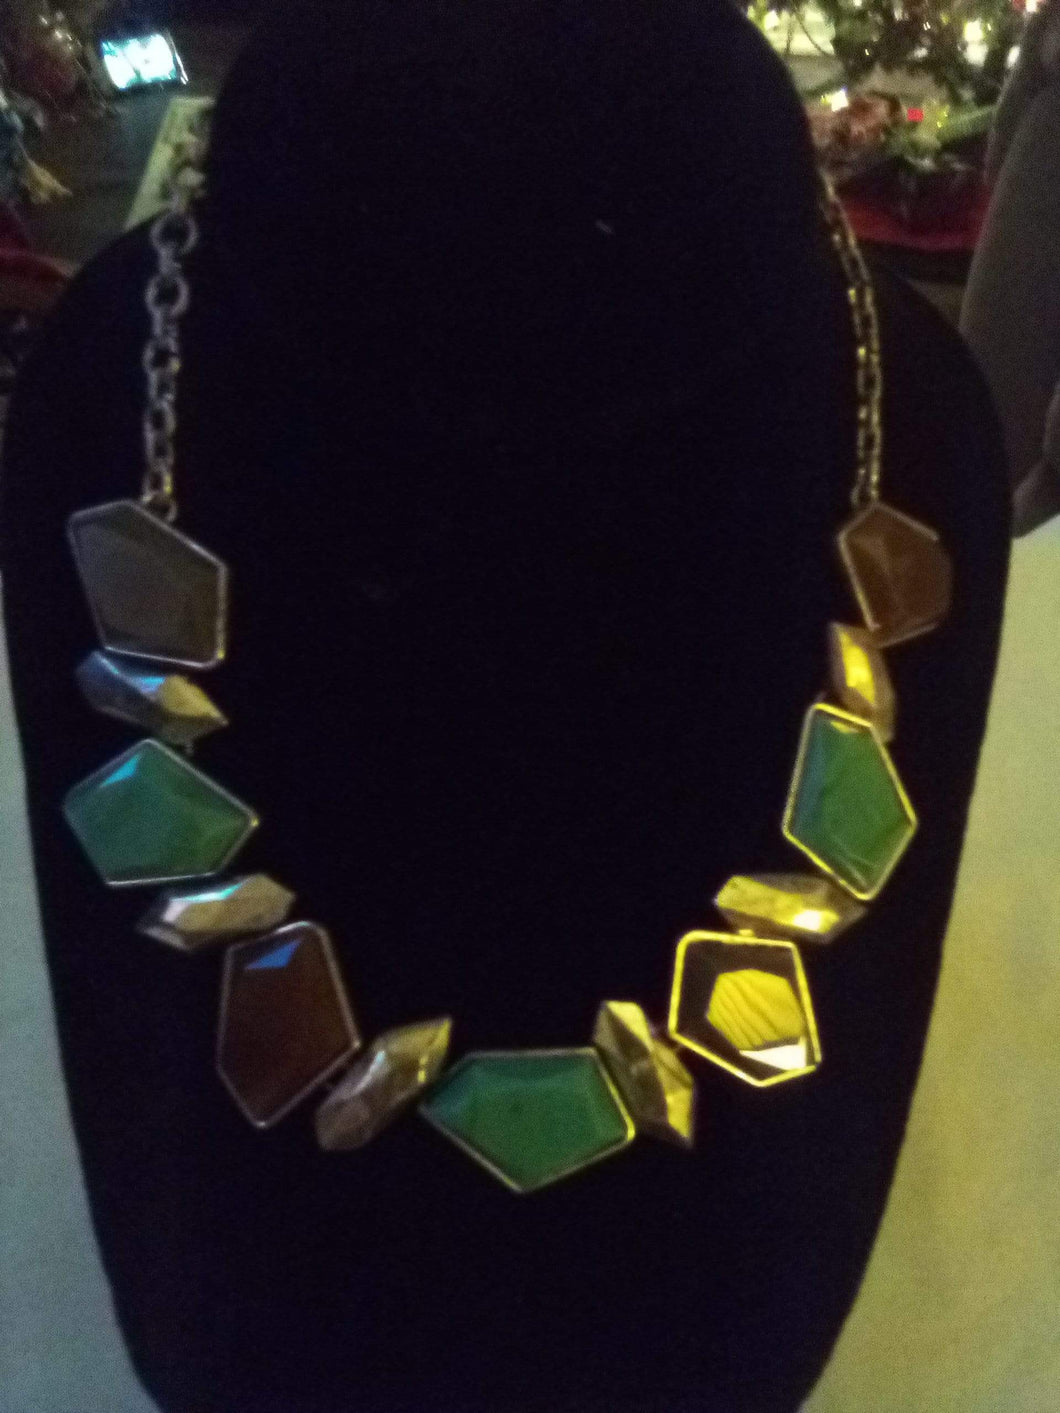 Dressy colorful necklace - B&P'sringsnthings